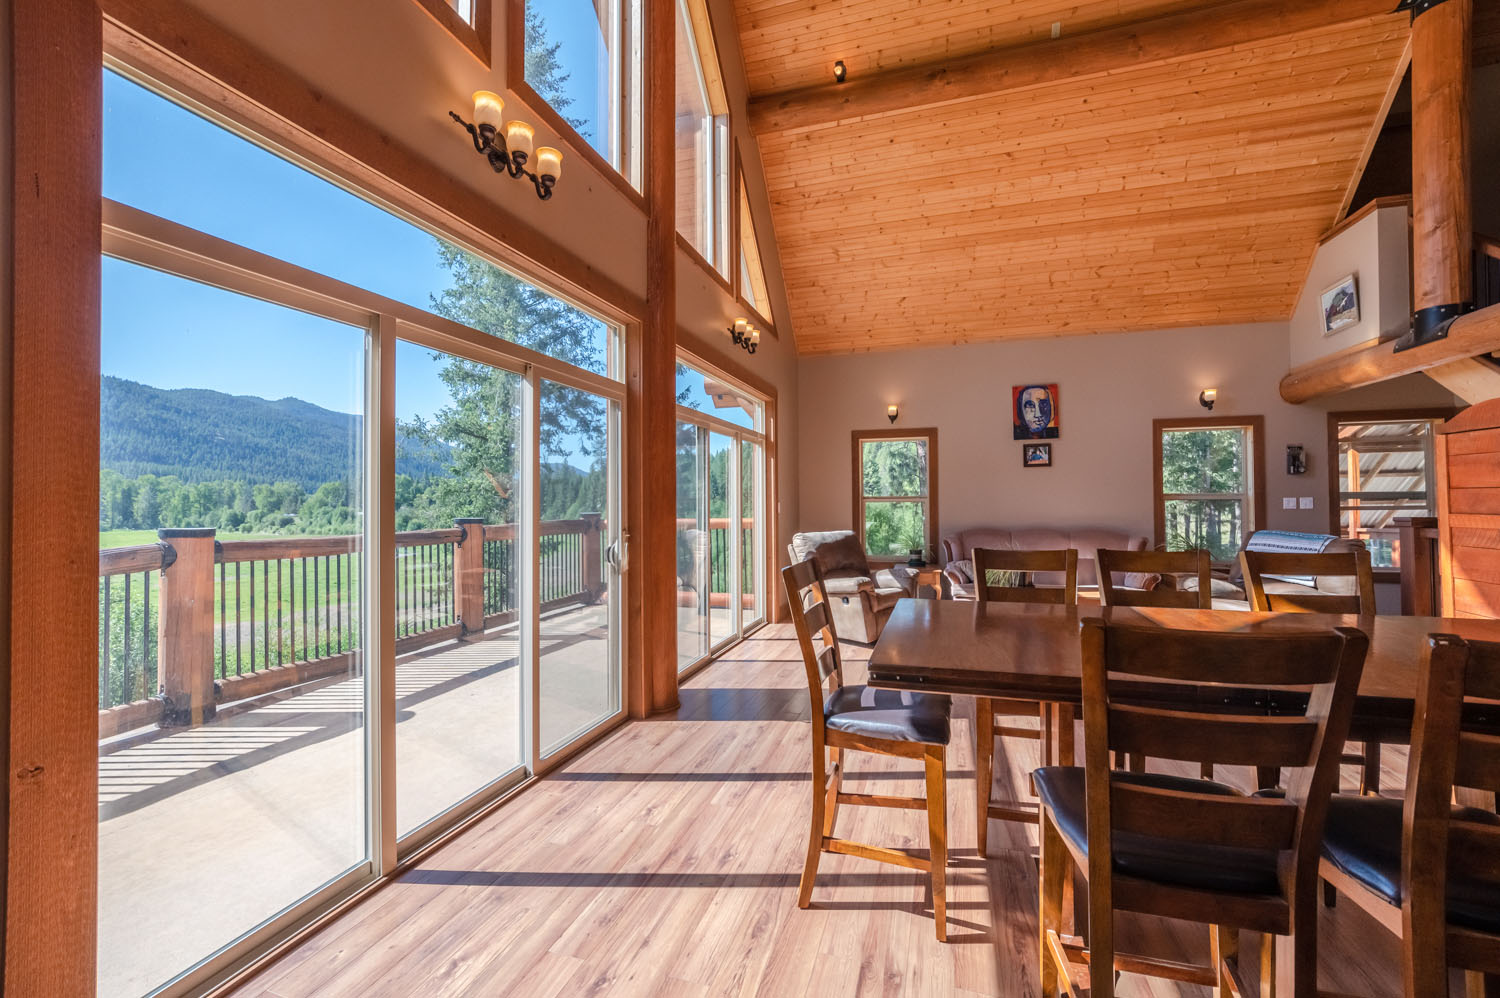 Willow springs ranch 22